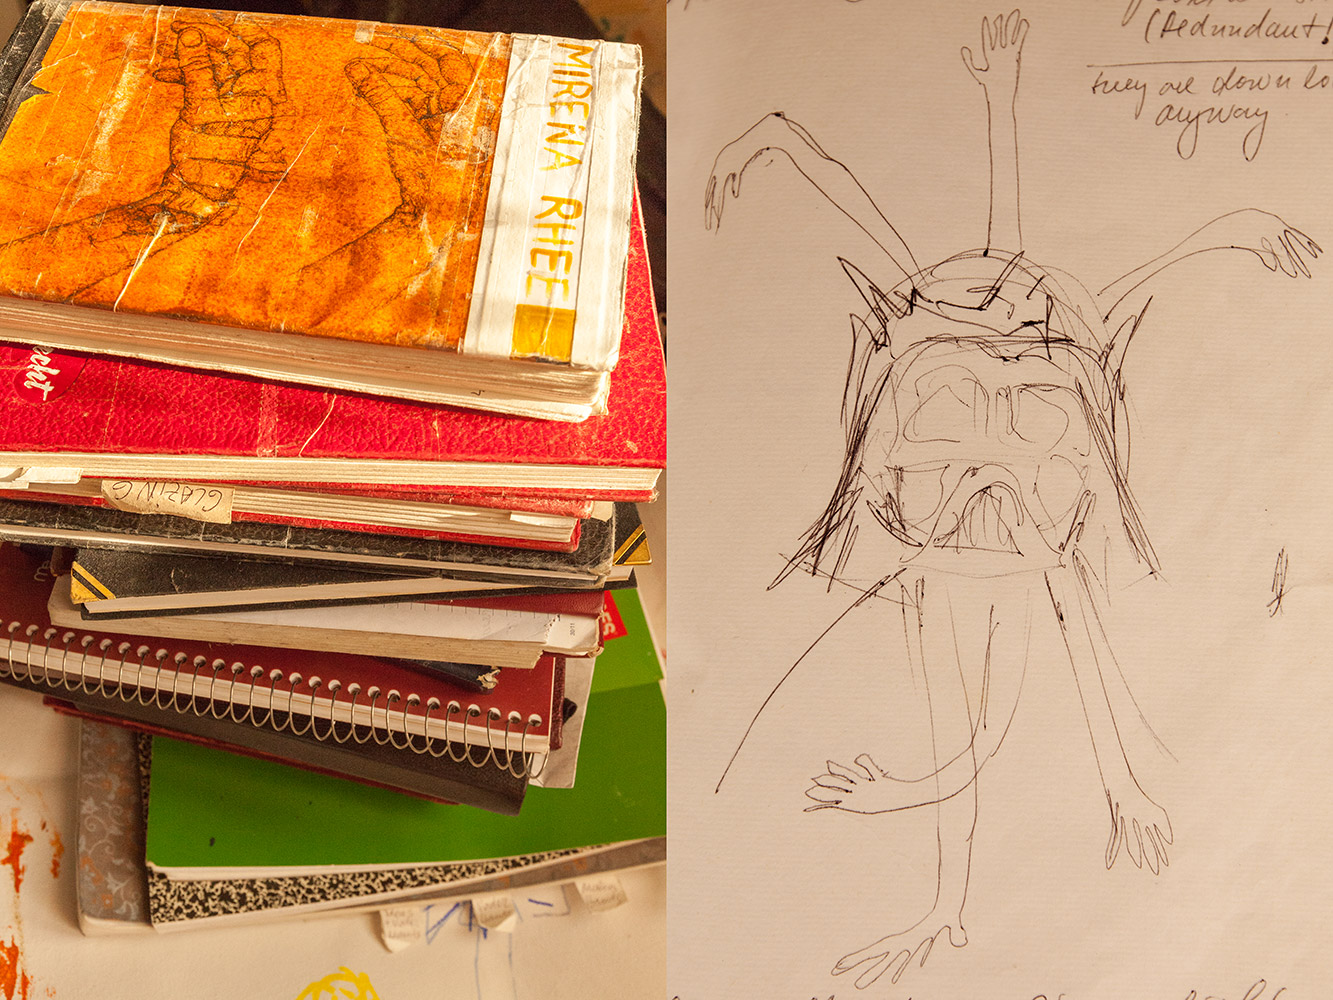 mirena rhee codices - sketches and notebooks